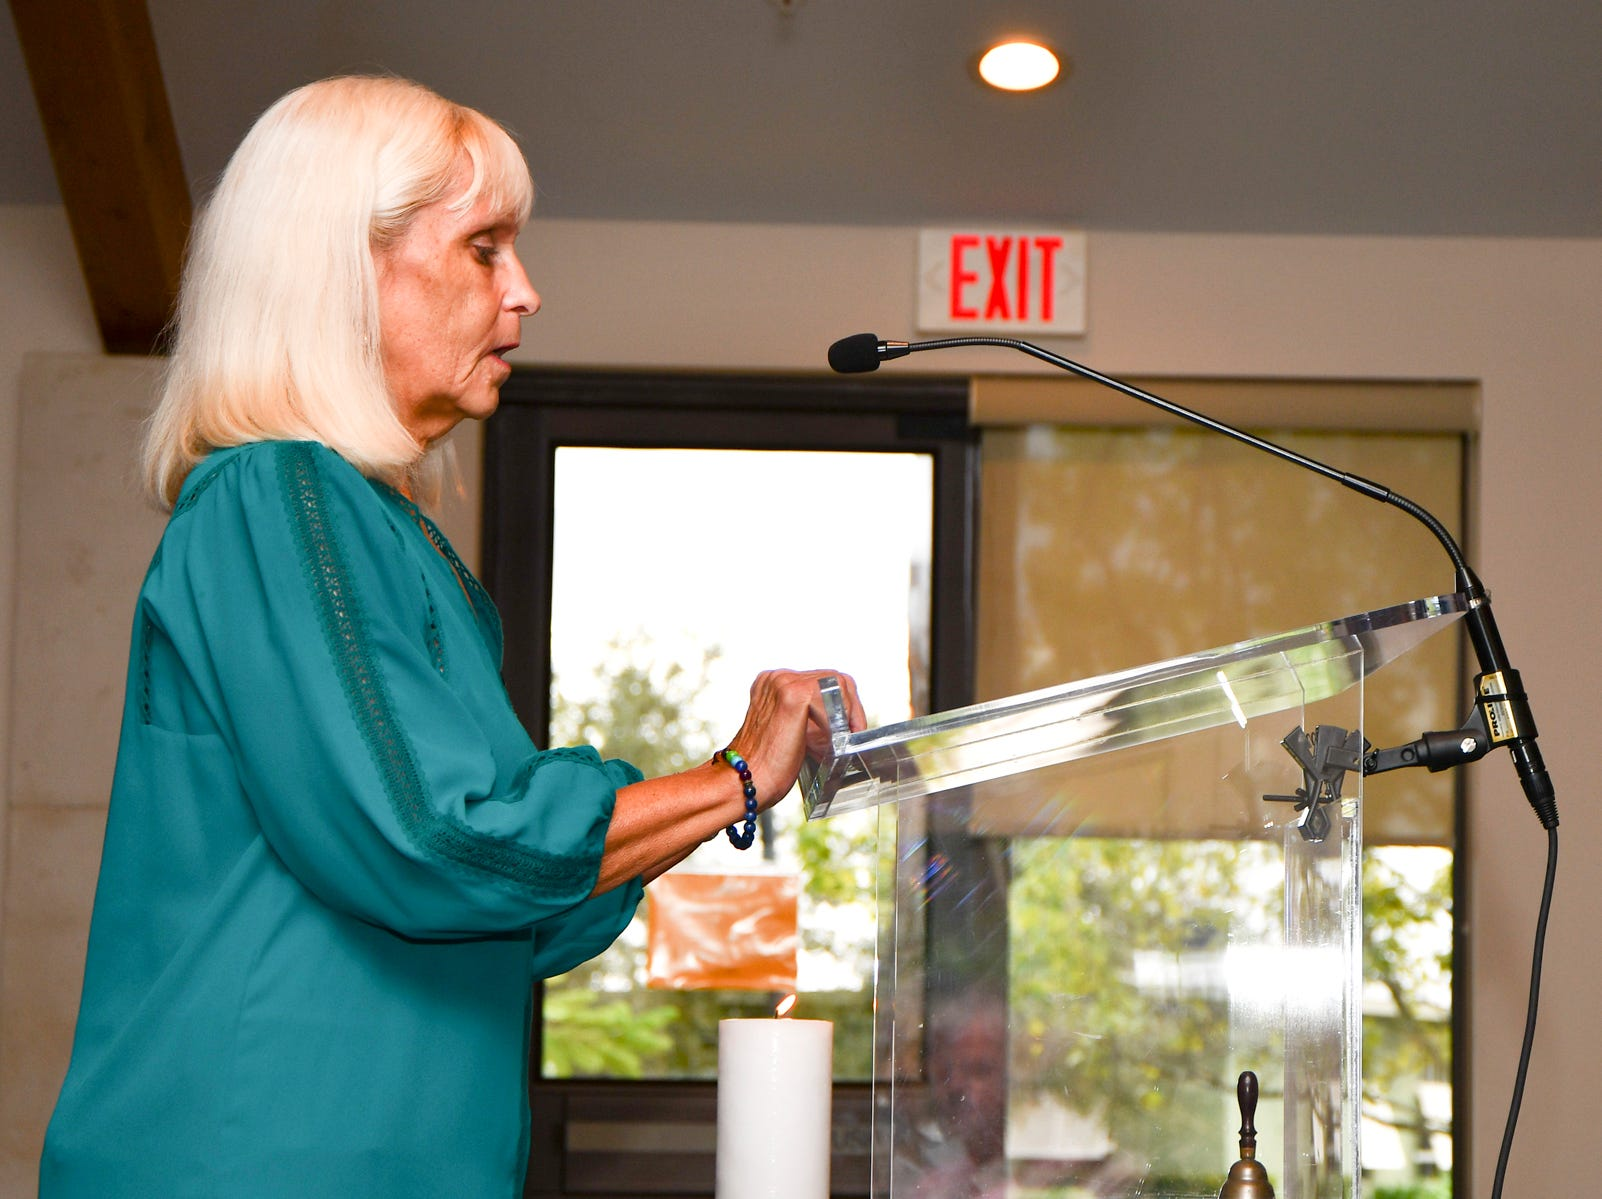 Roberta Scott, co-founder of the Interfaith Alliance of the Treasure Coast and event organizer, opened the Nov. 18 Thanksgiving service with a candle lighting.